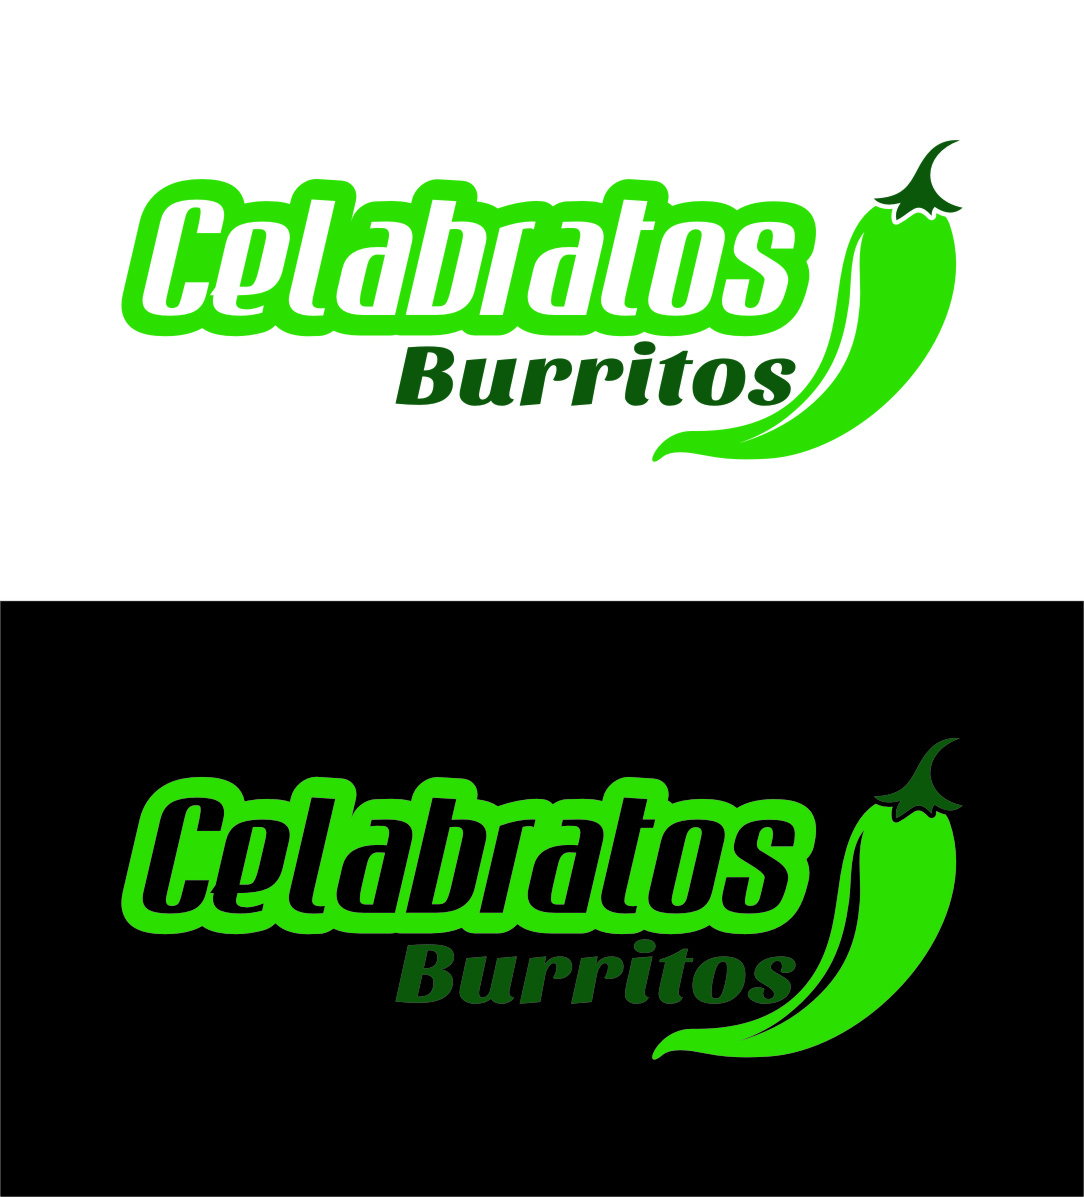 Logo Design by Ngepet_art - Entry No. 100 in the Logo Design Contest Imaginative Logo Design for Celabratos.